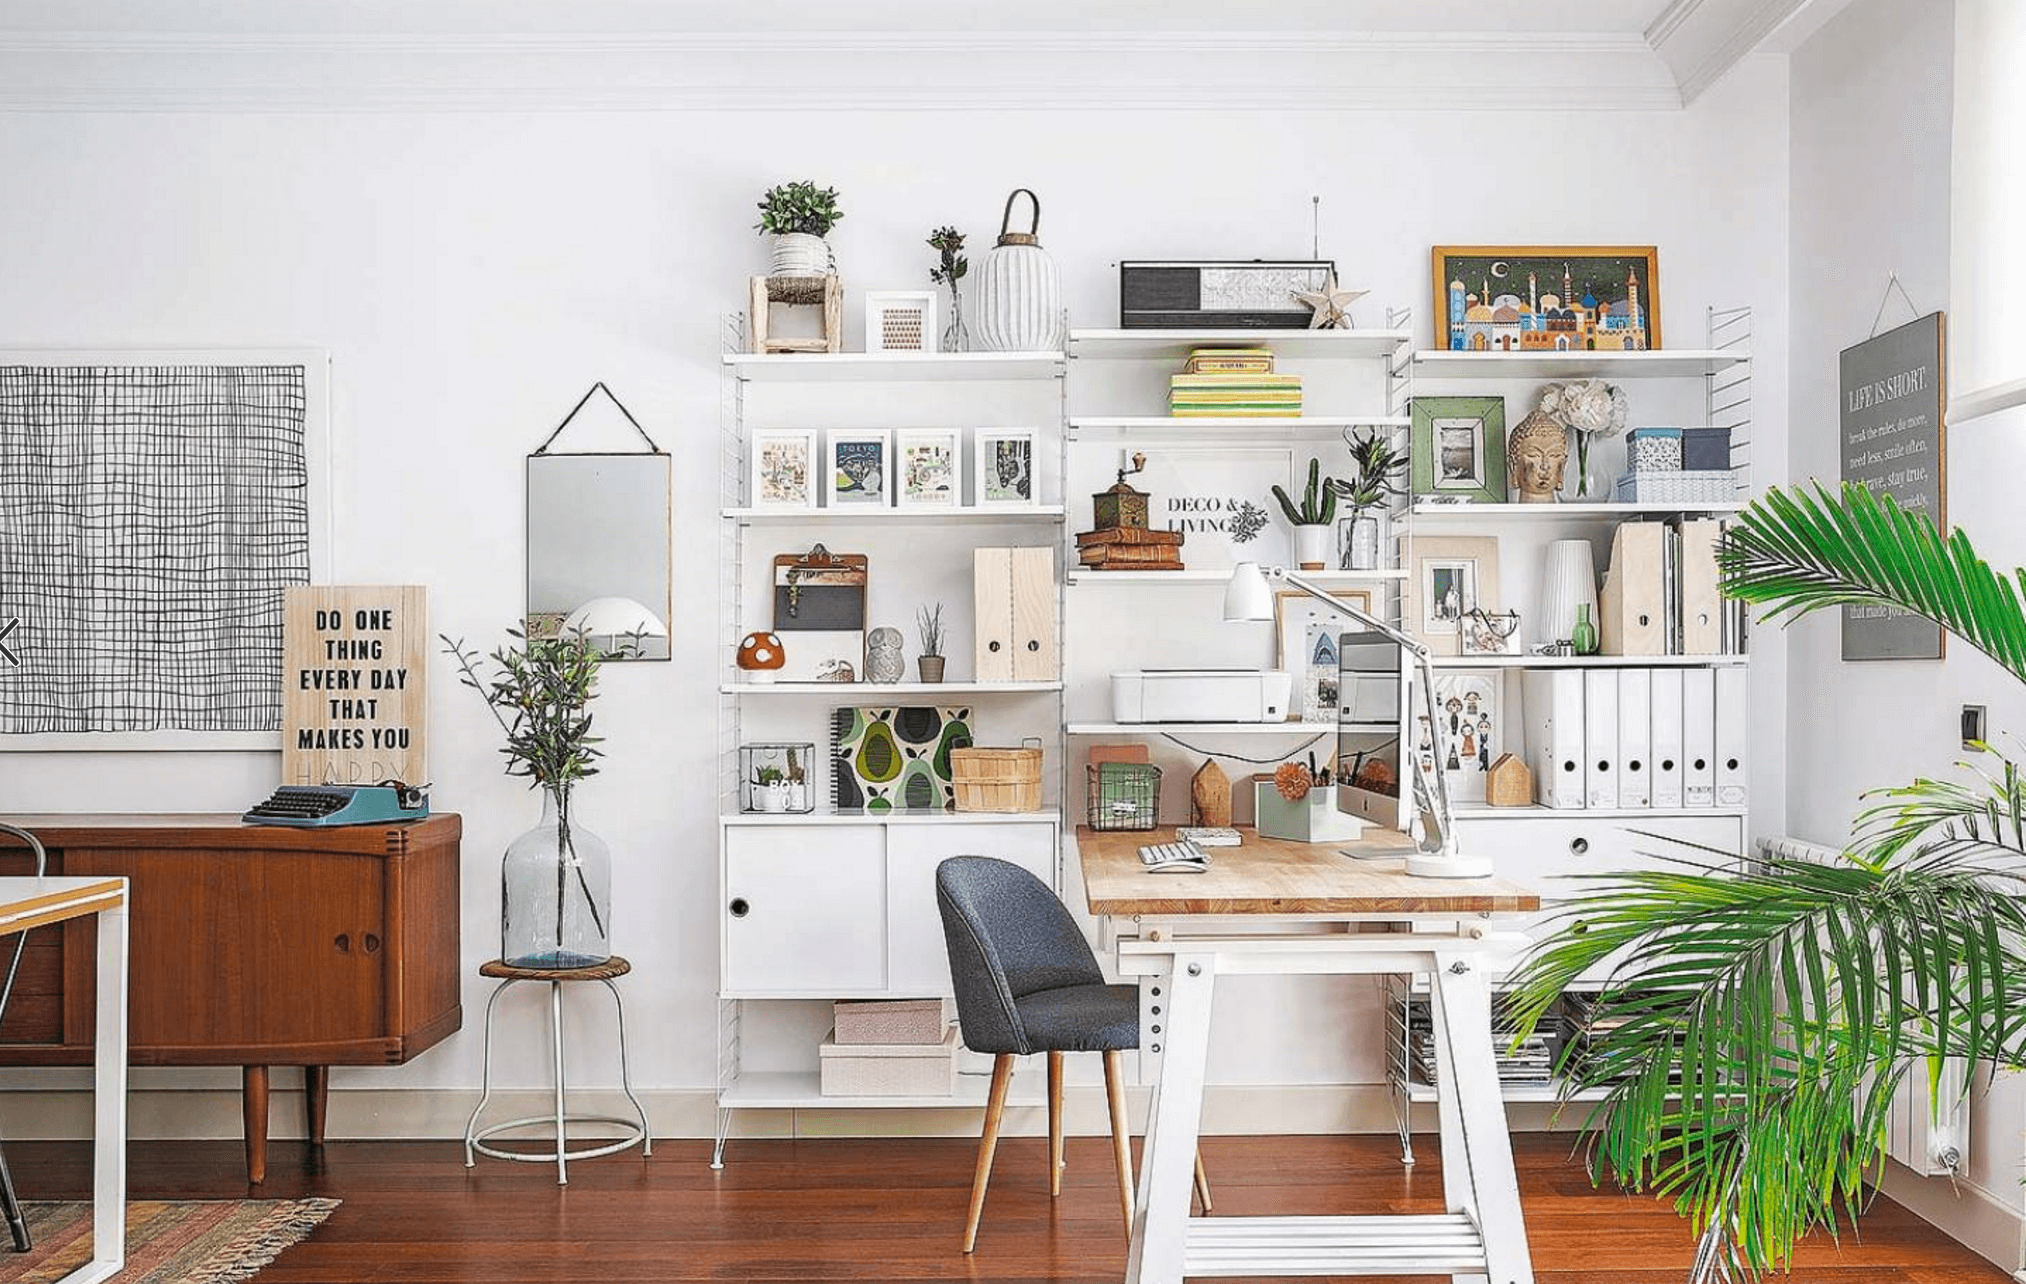 Home Design Business Ideas: 4 Modern Ideas For Your Home Office Décor